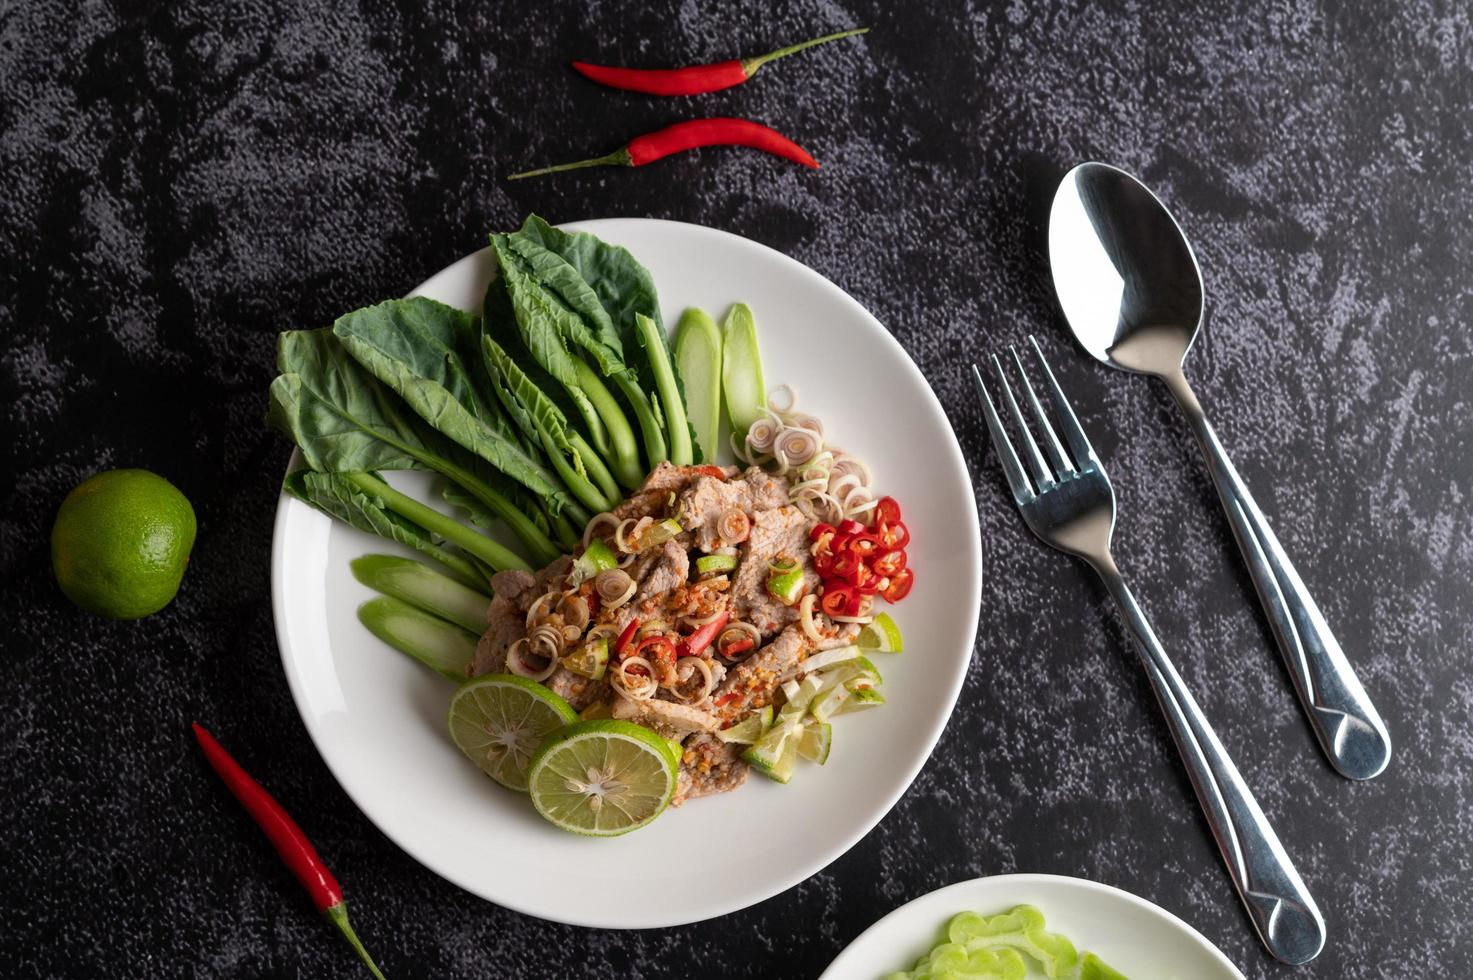 Spicy lime pork salad on a bed of greens photo